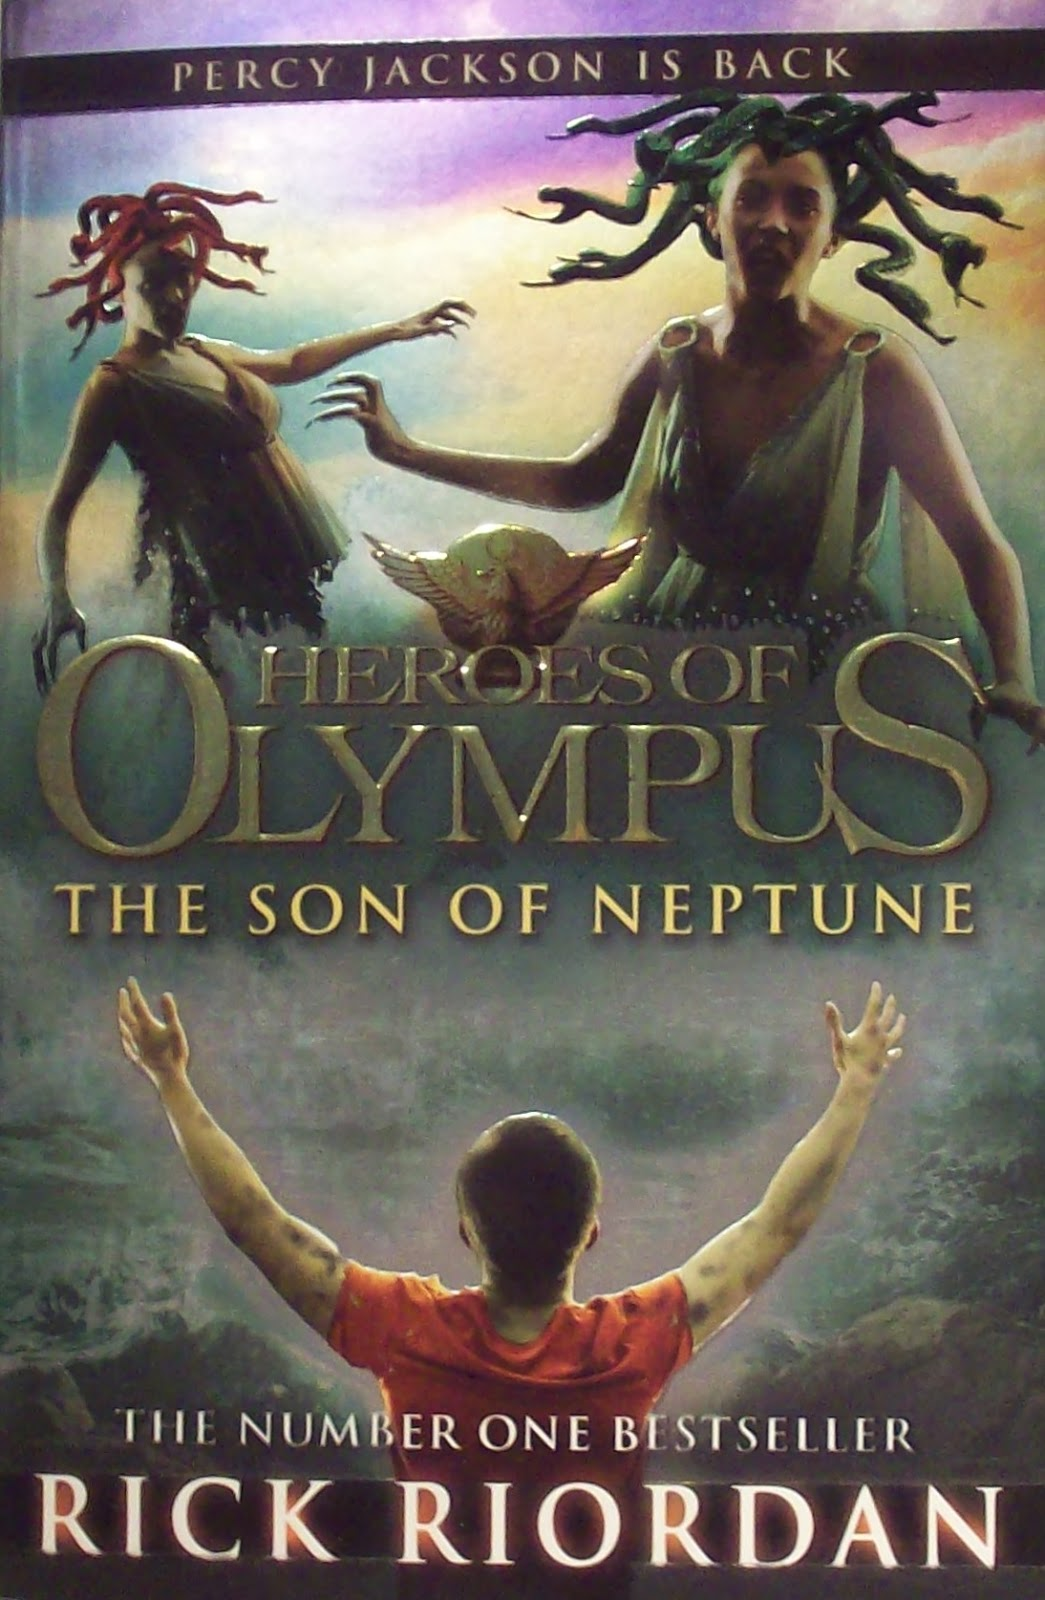 son of neptune by rick riordan All because of amnesia rick riordan is the author of the famous book series percy jackson the son of neptune is a myth story because it's mostly about.